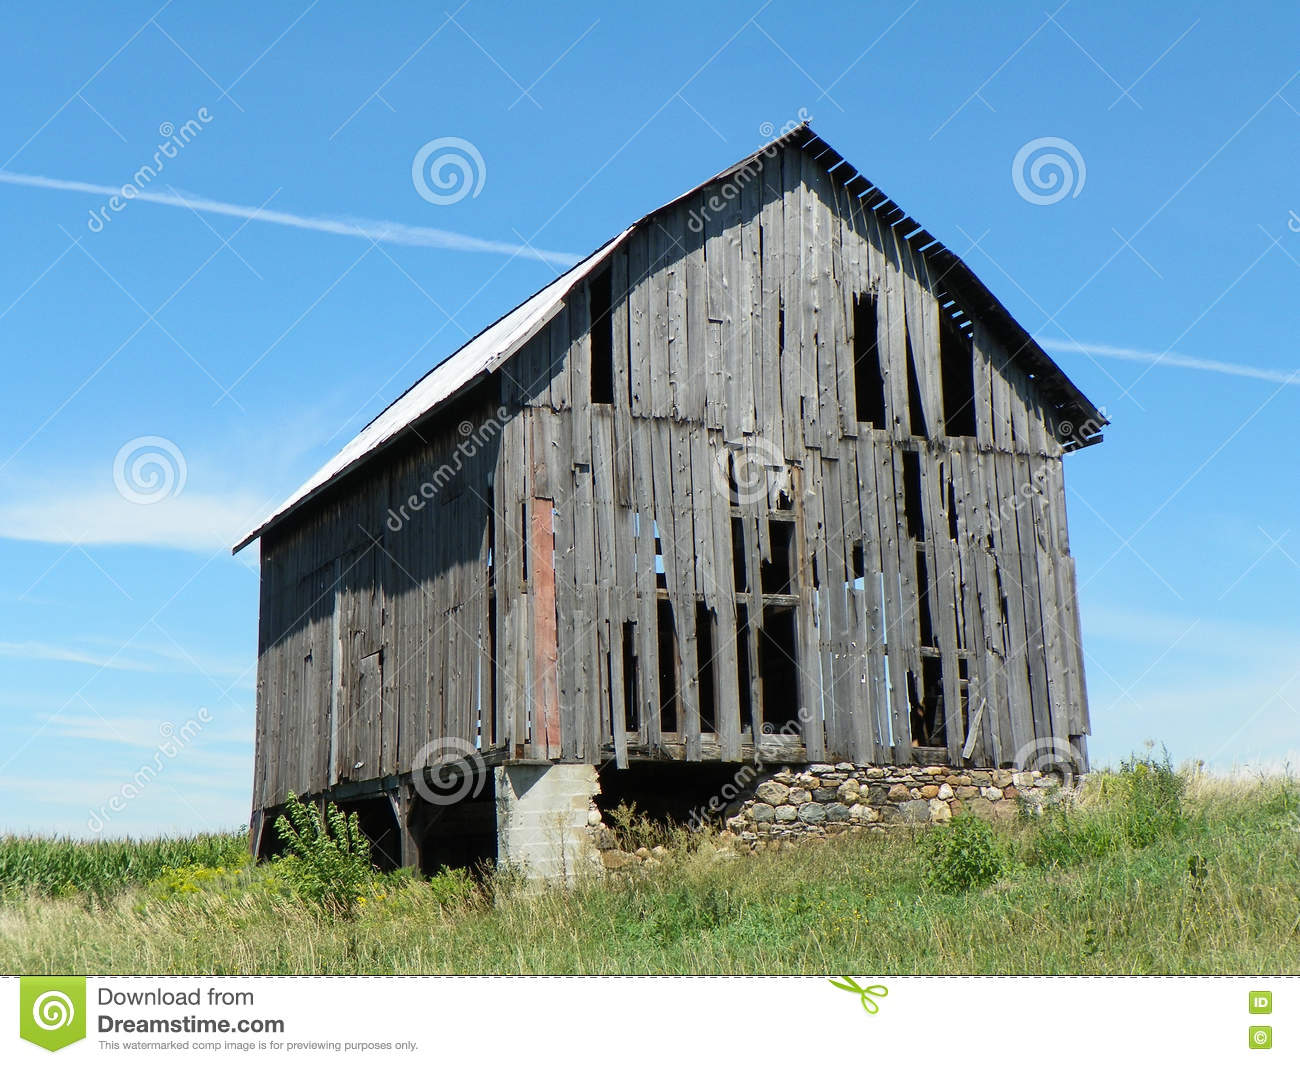 New york cayuga county - Old Barn In Cayuga County New York State